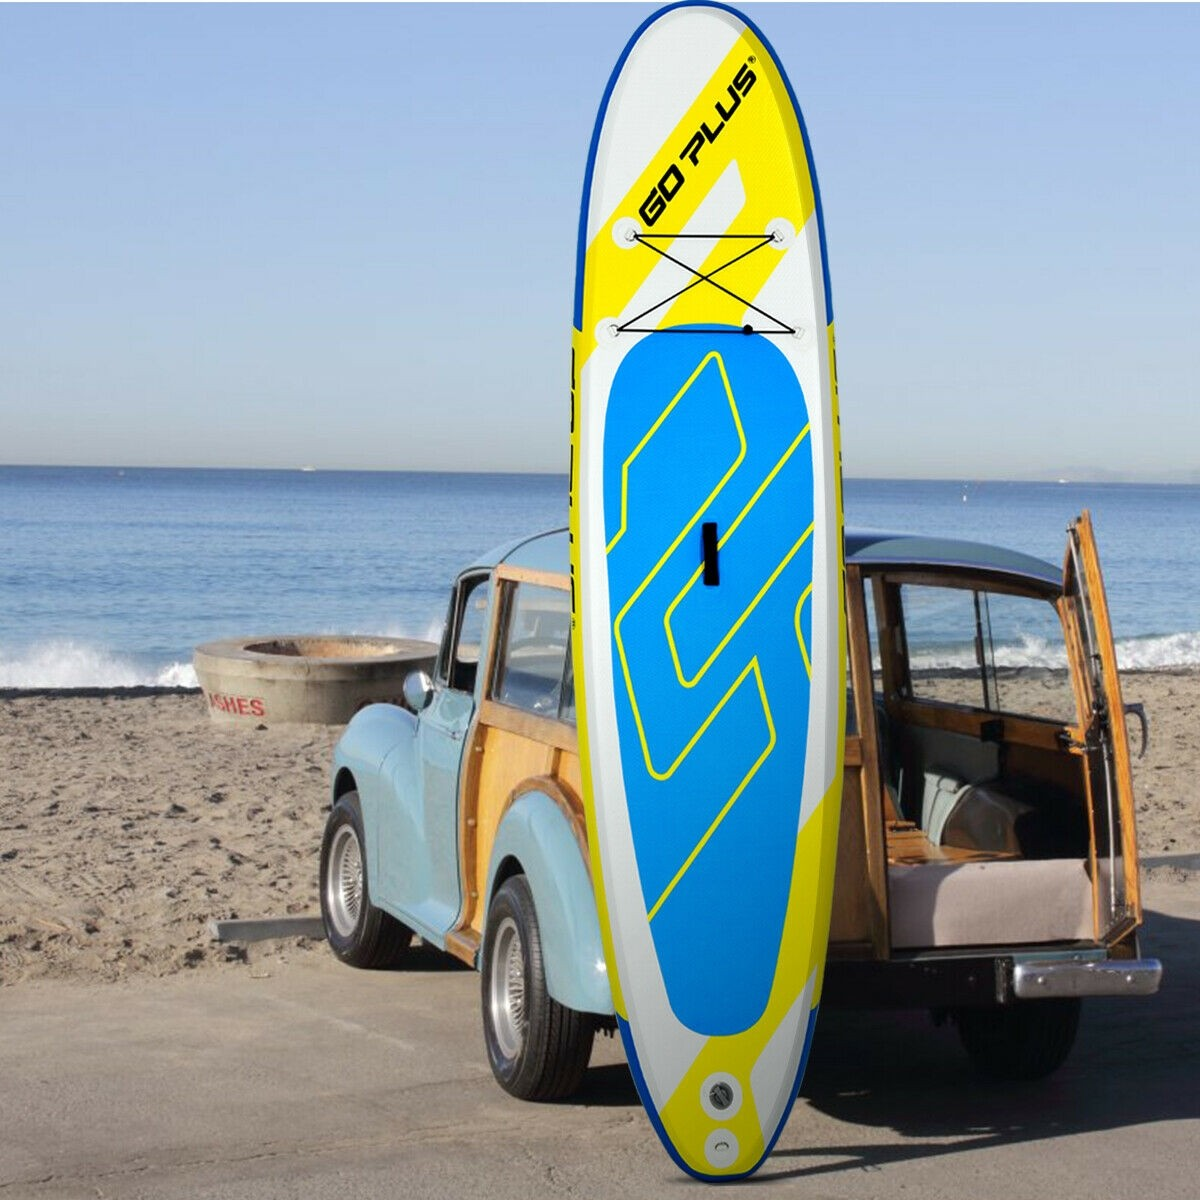 10 Ft. Inflatable Stand Up Paddle Surfboard With Bag